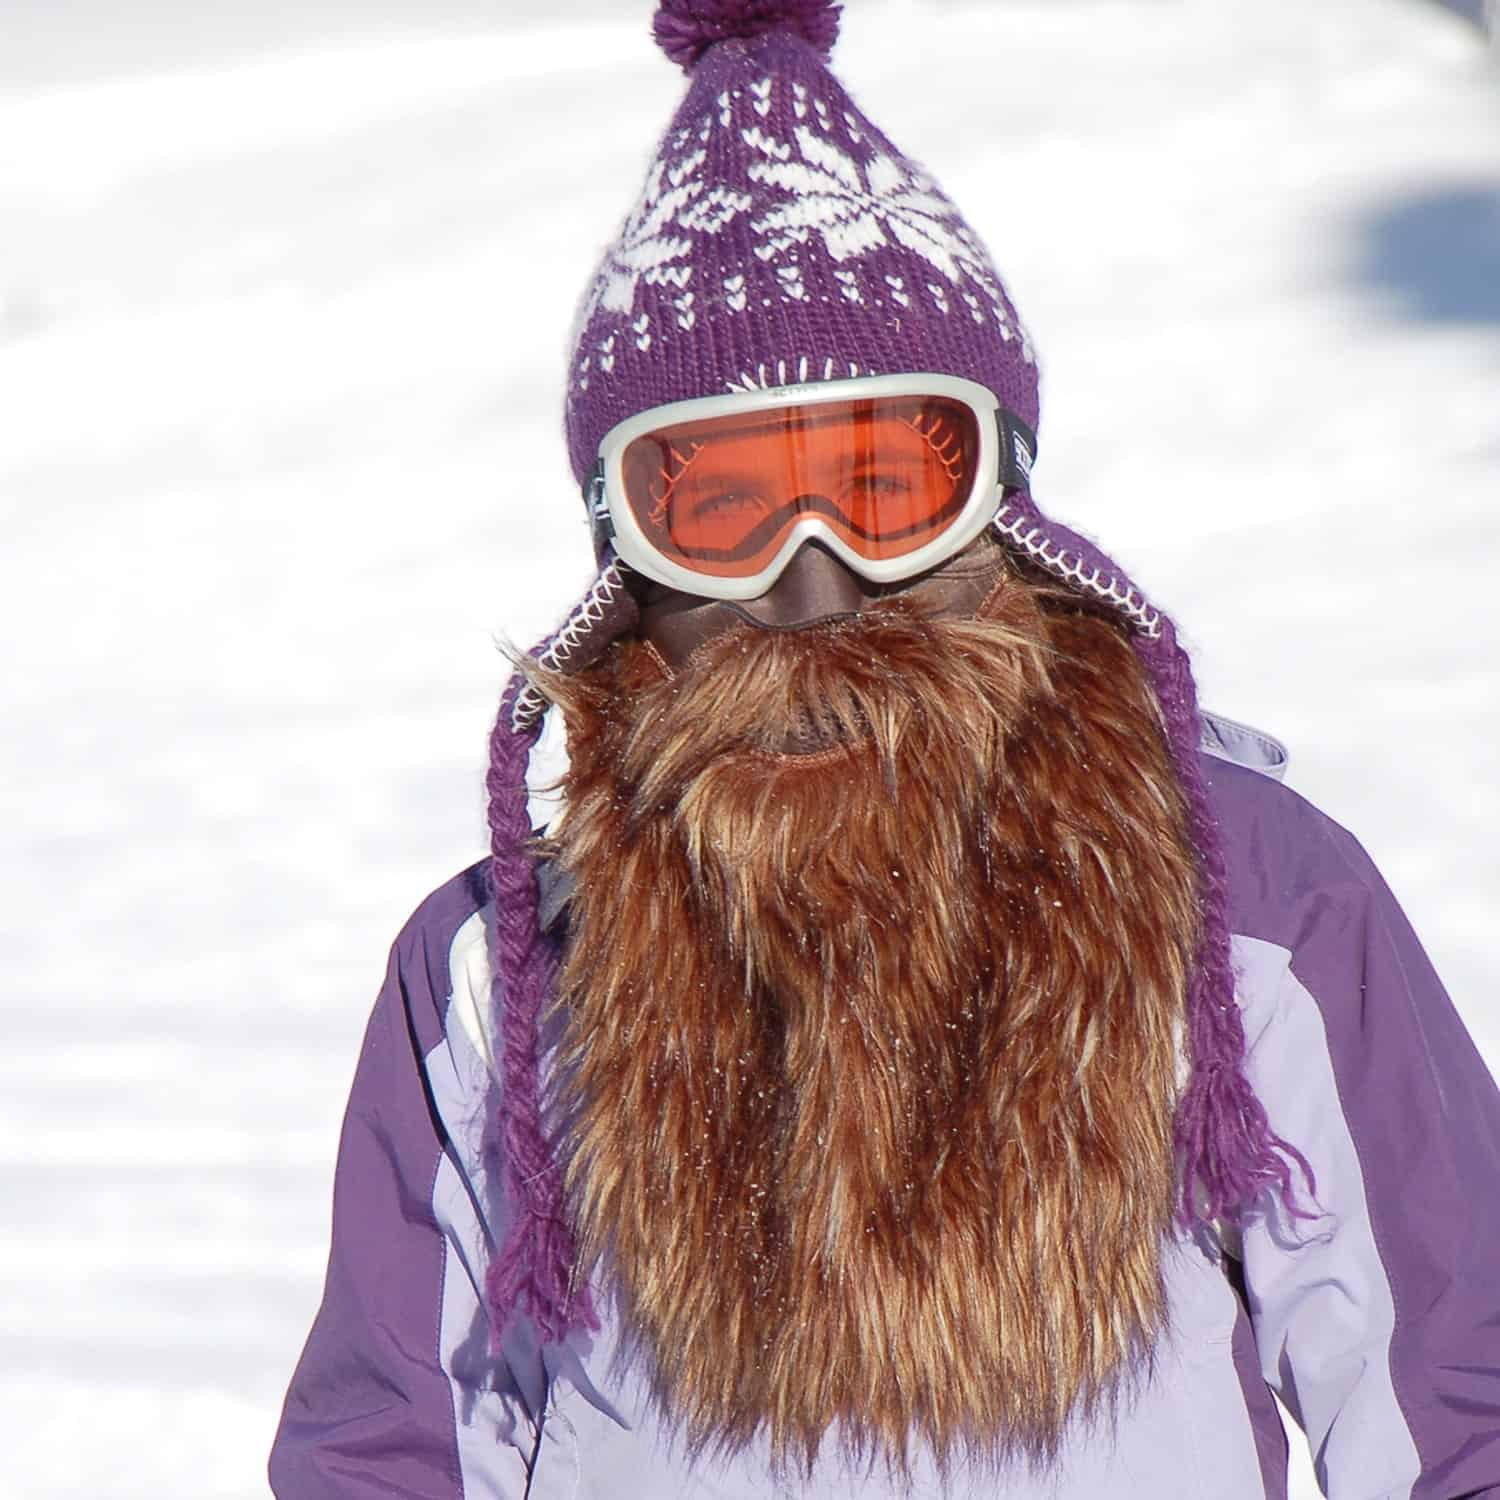 Beardski Bearded Ski Mask Buy Unique Gift Idea for Winter